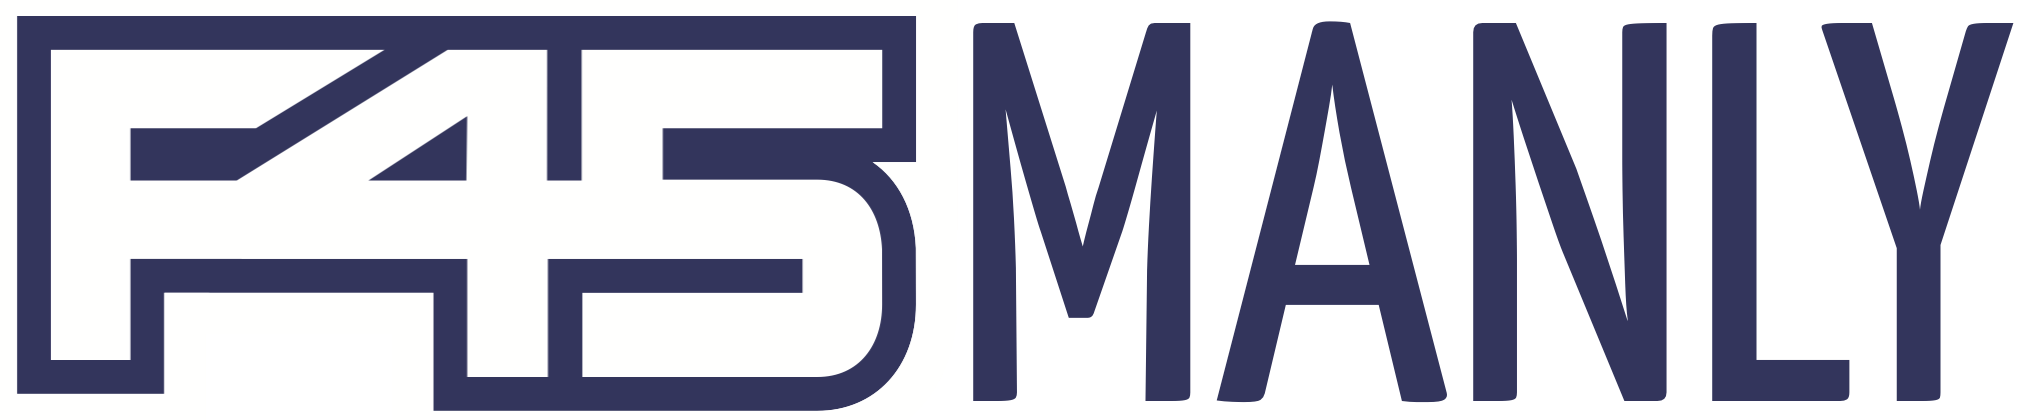 F45 MANLY LOGO_1.png